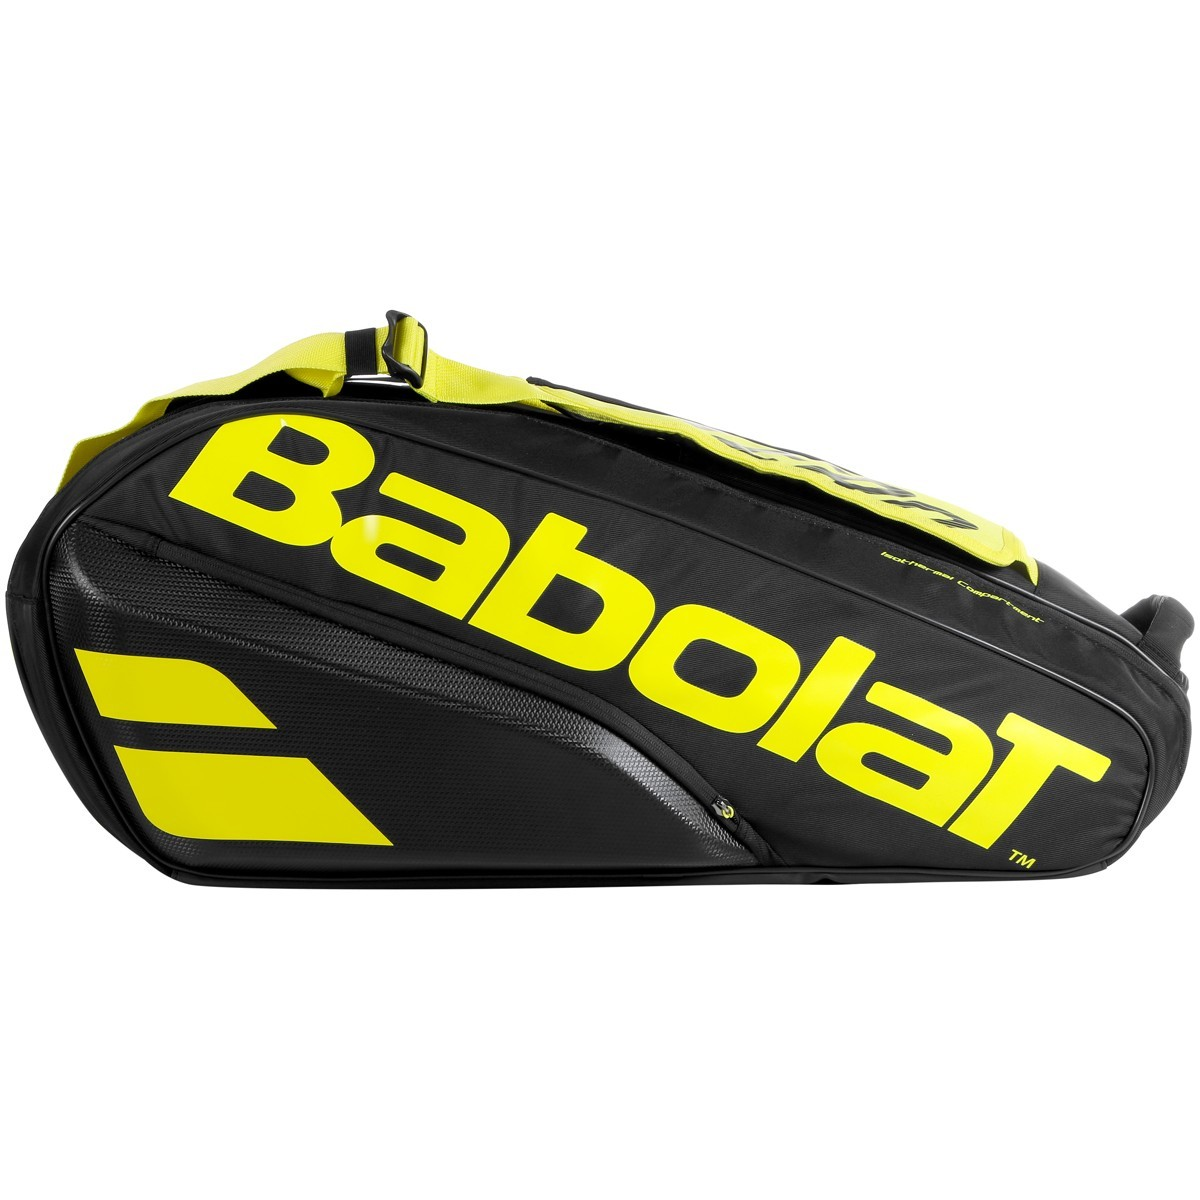 Теннисная сумка Babolat Pure Aero x6 2021 black/yelllow